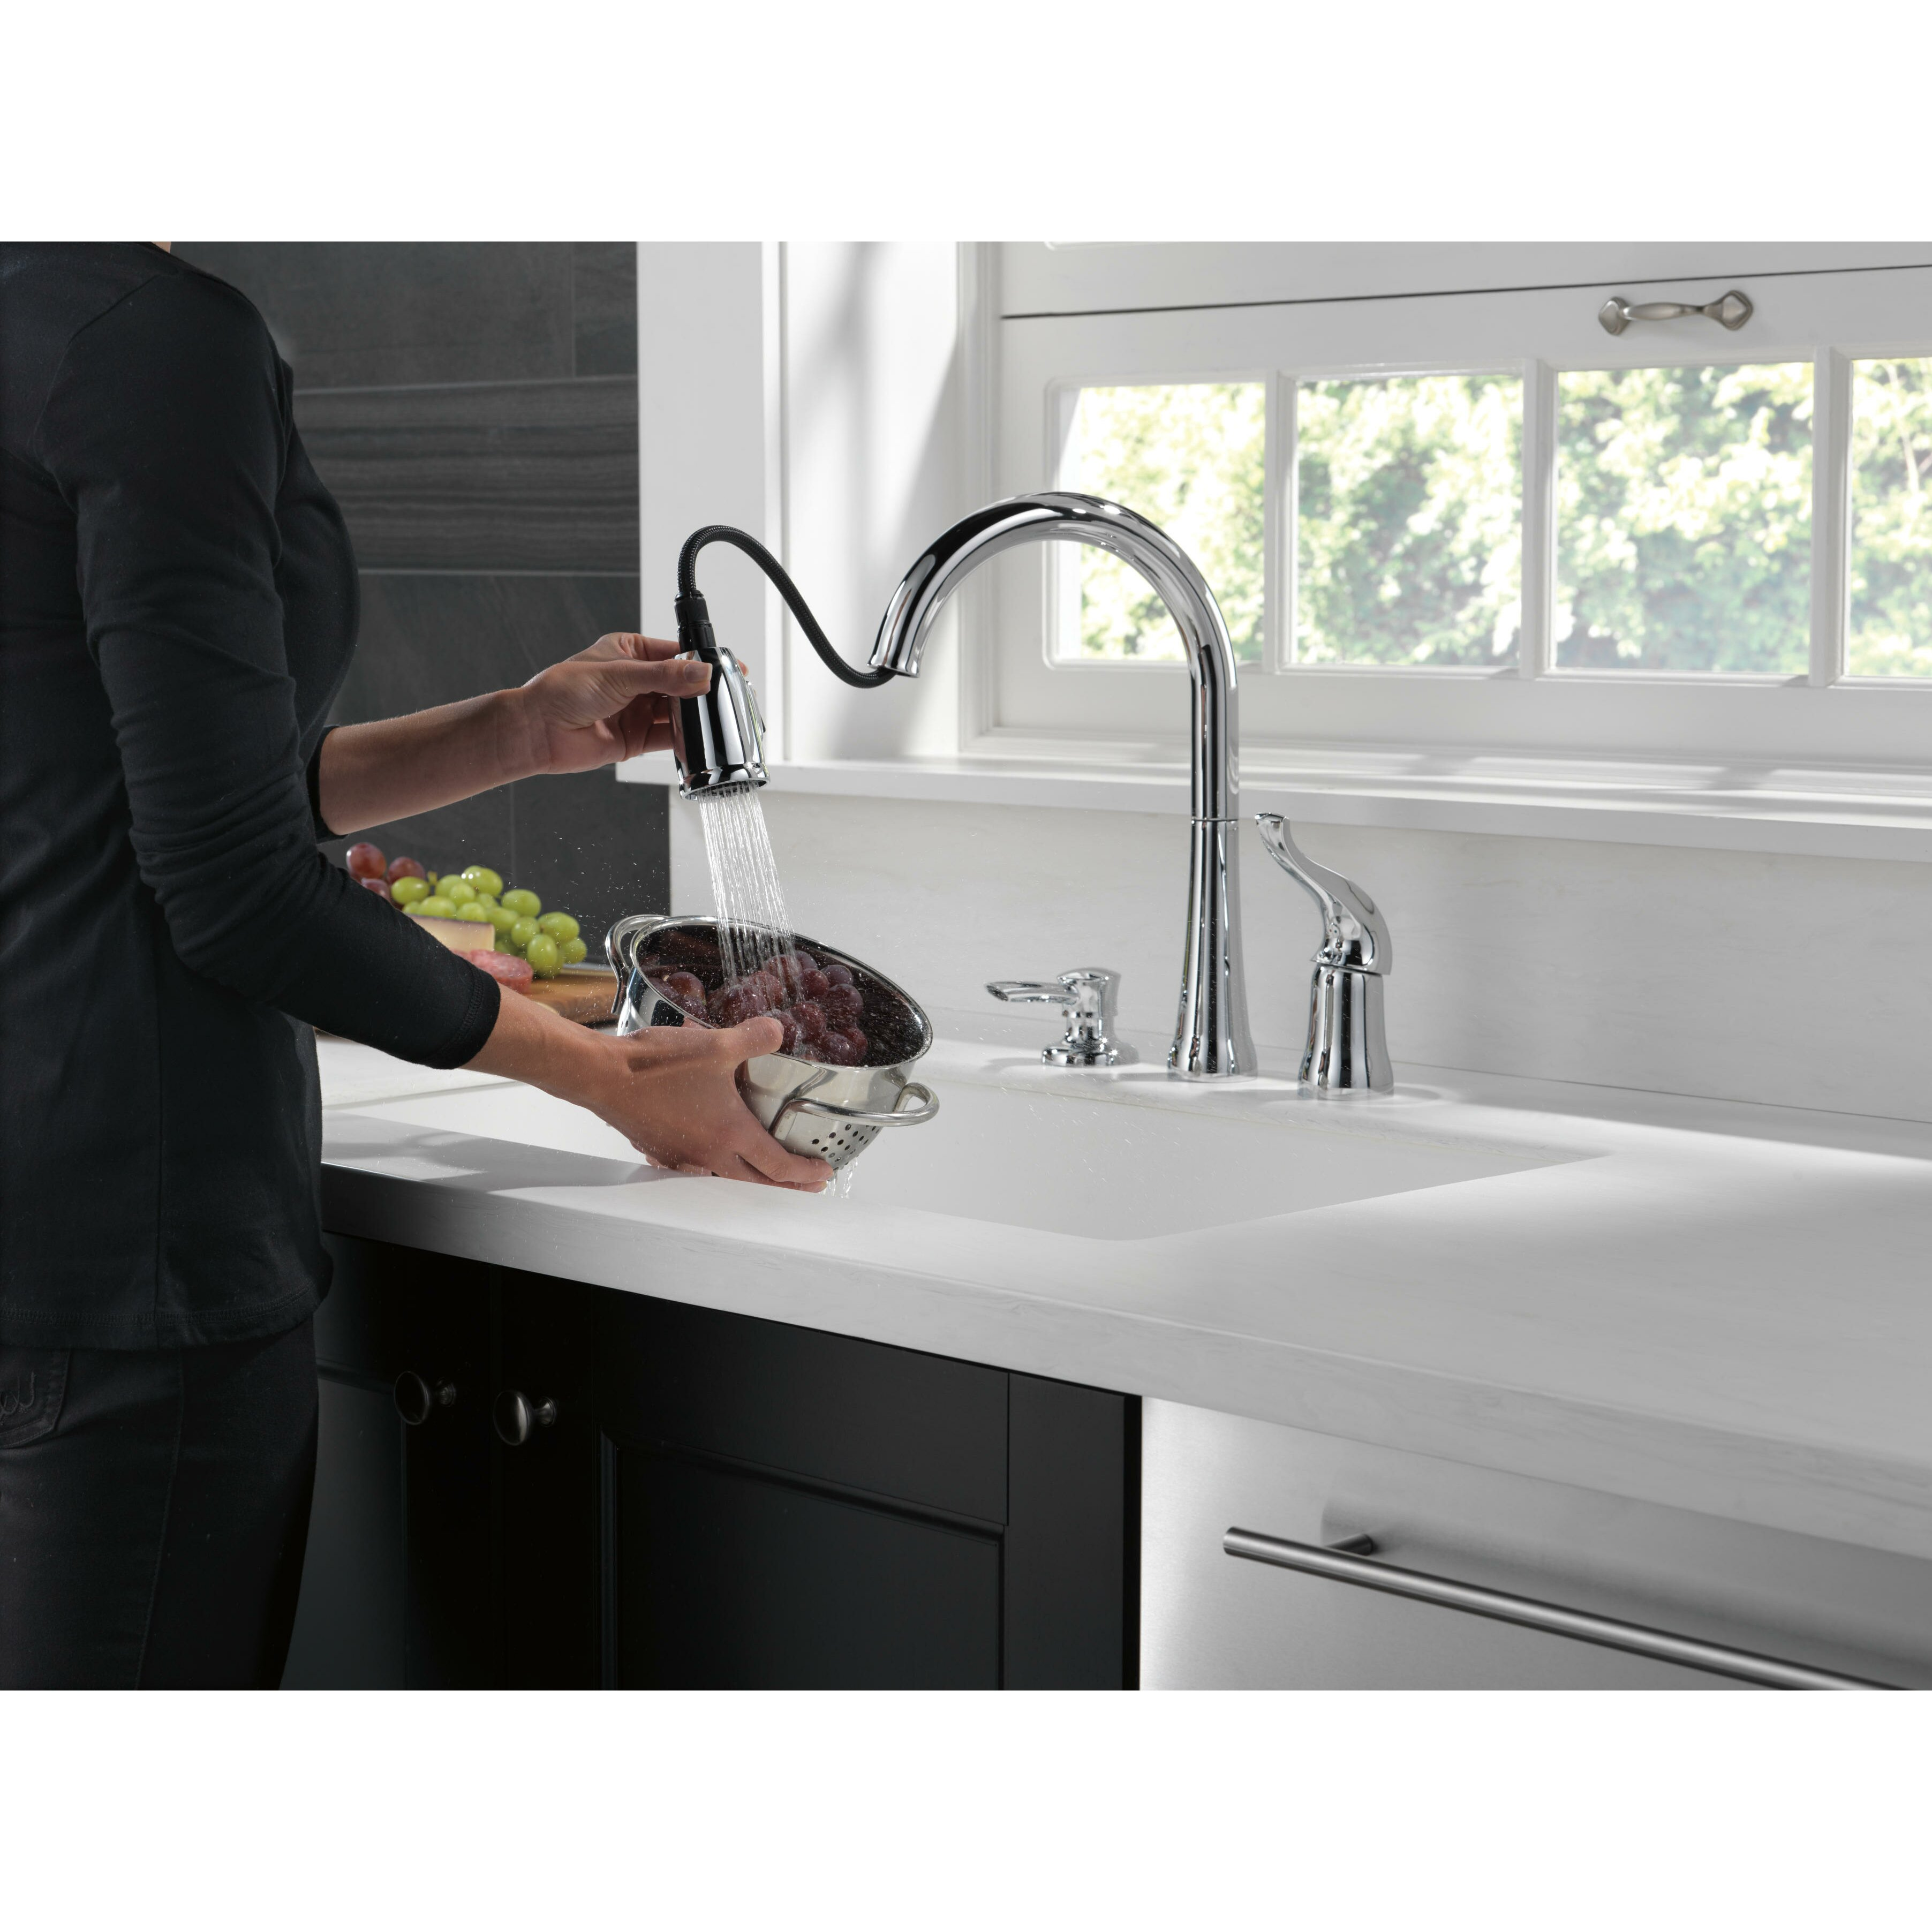 How To Change A Kitchen Faucet. How To Change A Kitchen Faucet ...